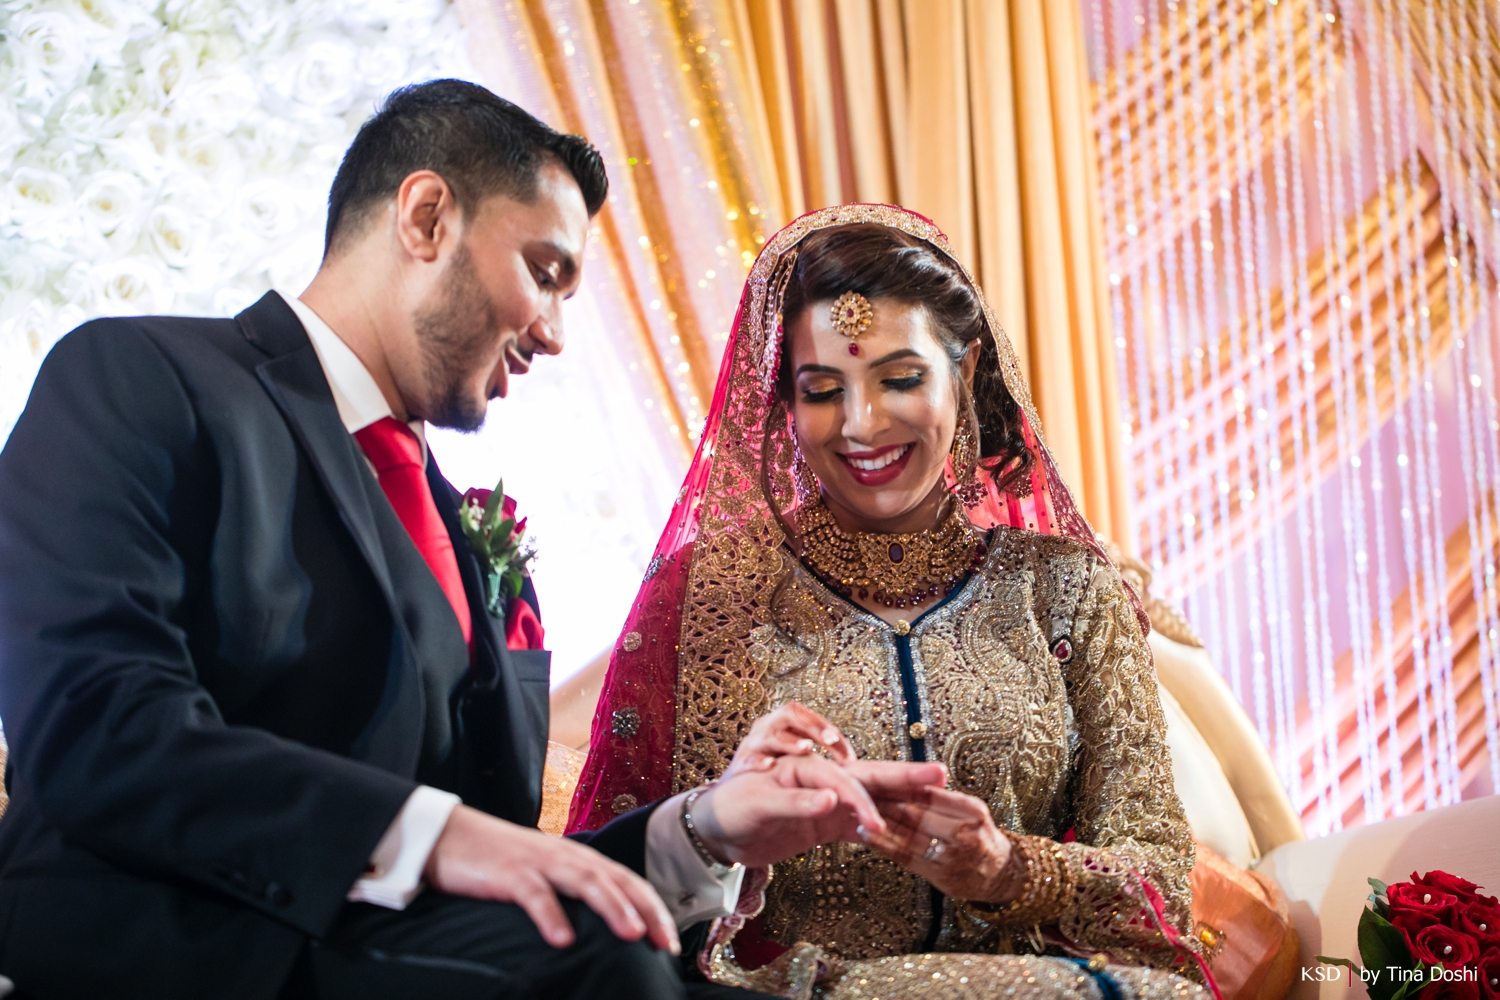 nj_south_asian_wedding_0111